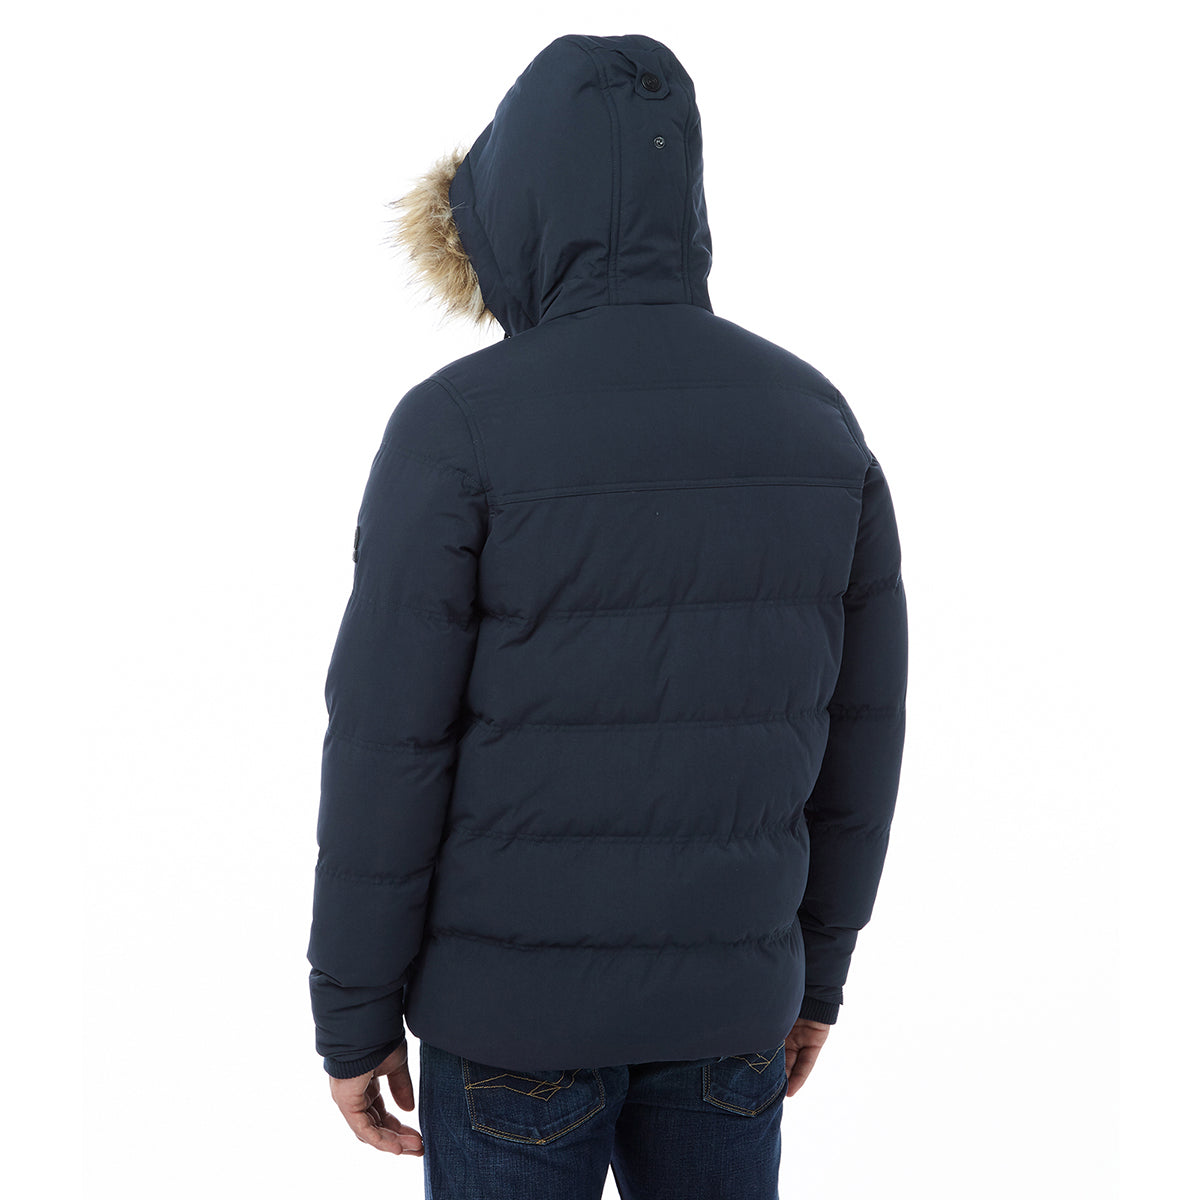 Ryburn Mens TCZ Thermal Jacket - Navy image 4